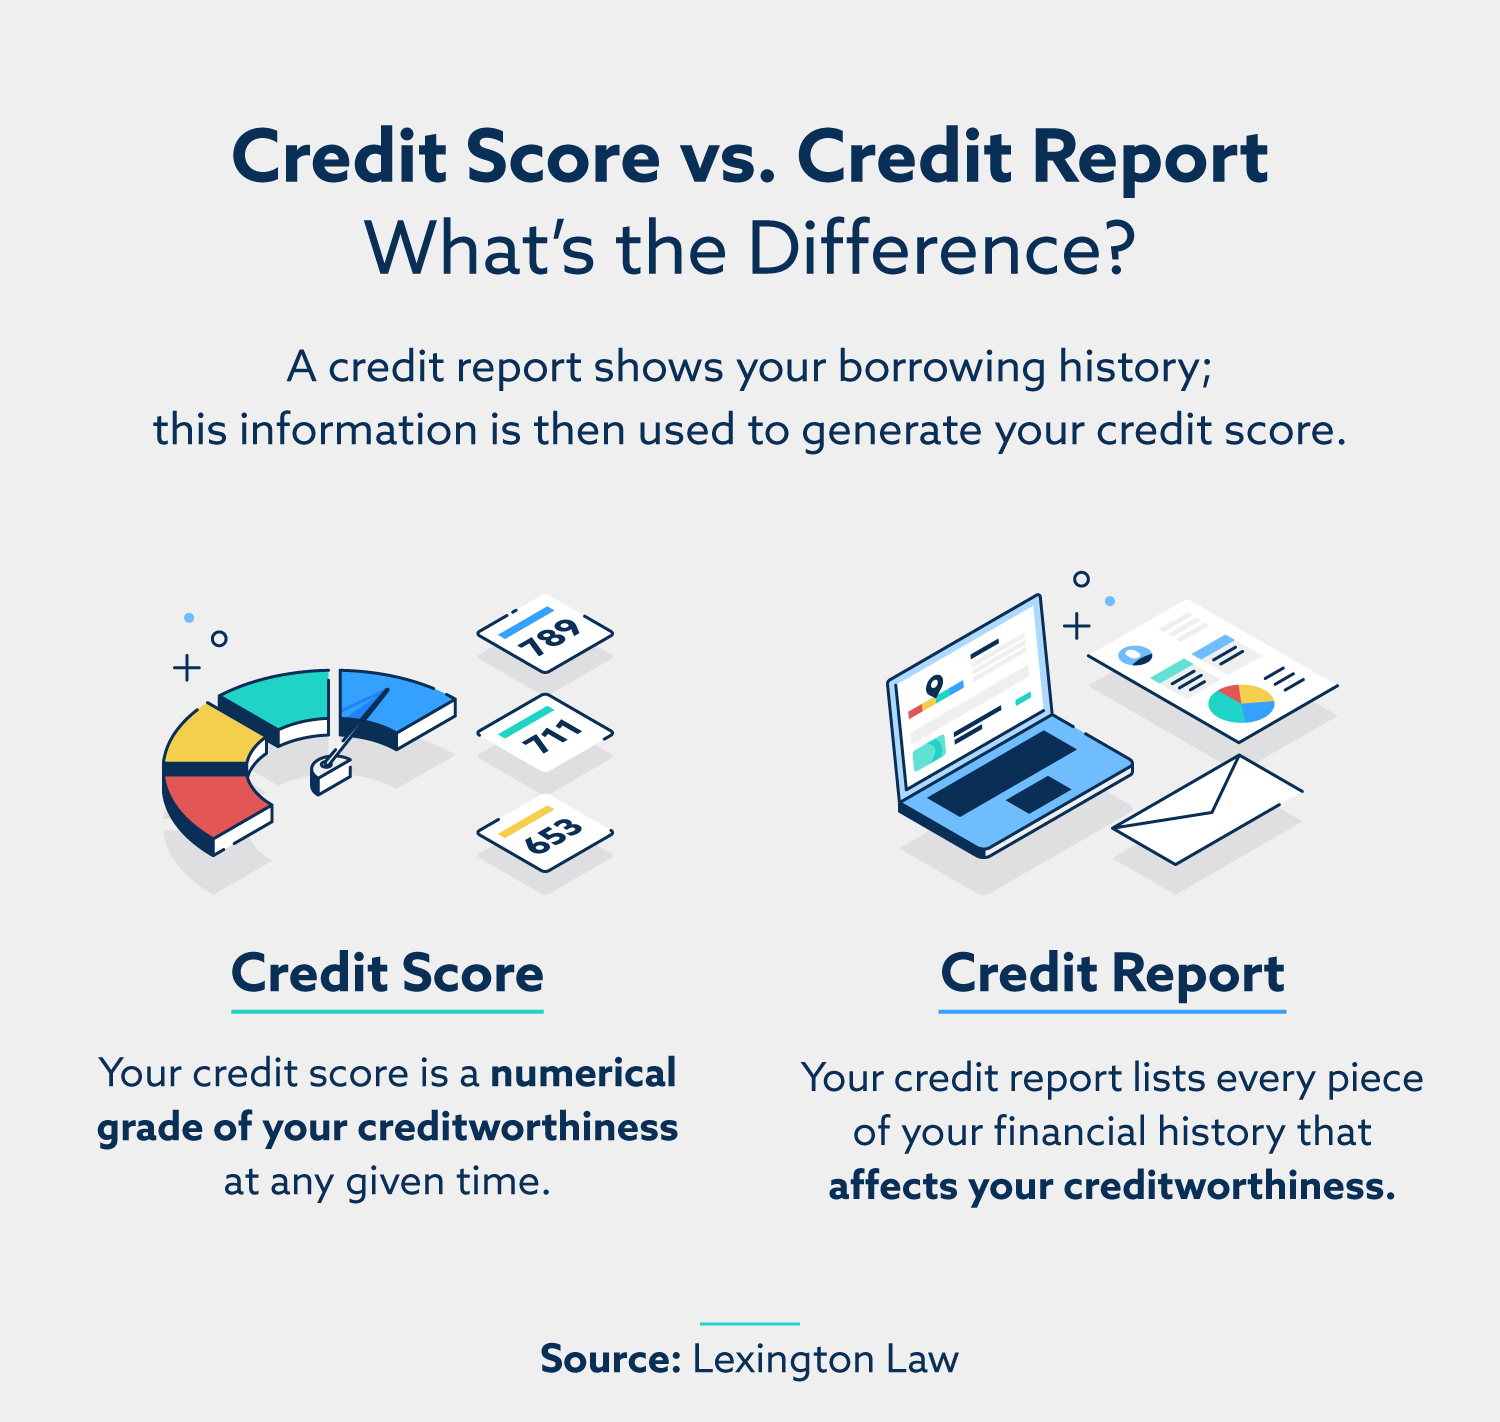 Credit Score vs. Credit Report: What's the Difference? A credit report shows your borrowing history; this information is then used to generate your credit score. Credit Score: Your credit score is a numerical grade of your creditworthiness at any given time. Credit Report: Your credit report may list every piece of your financial history that affects your creditworthiness.